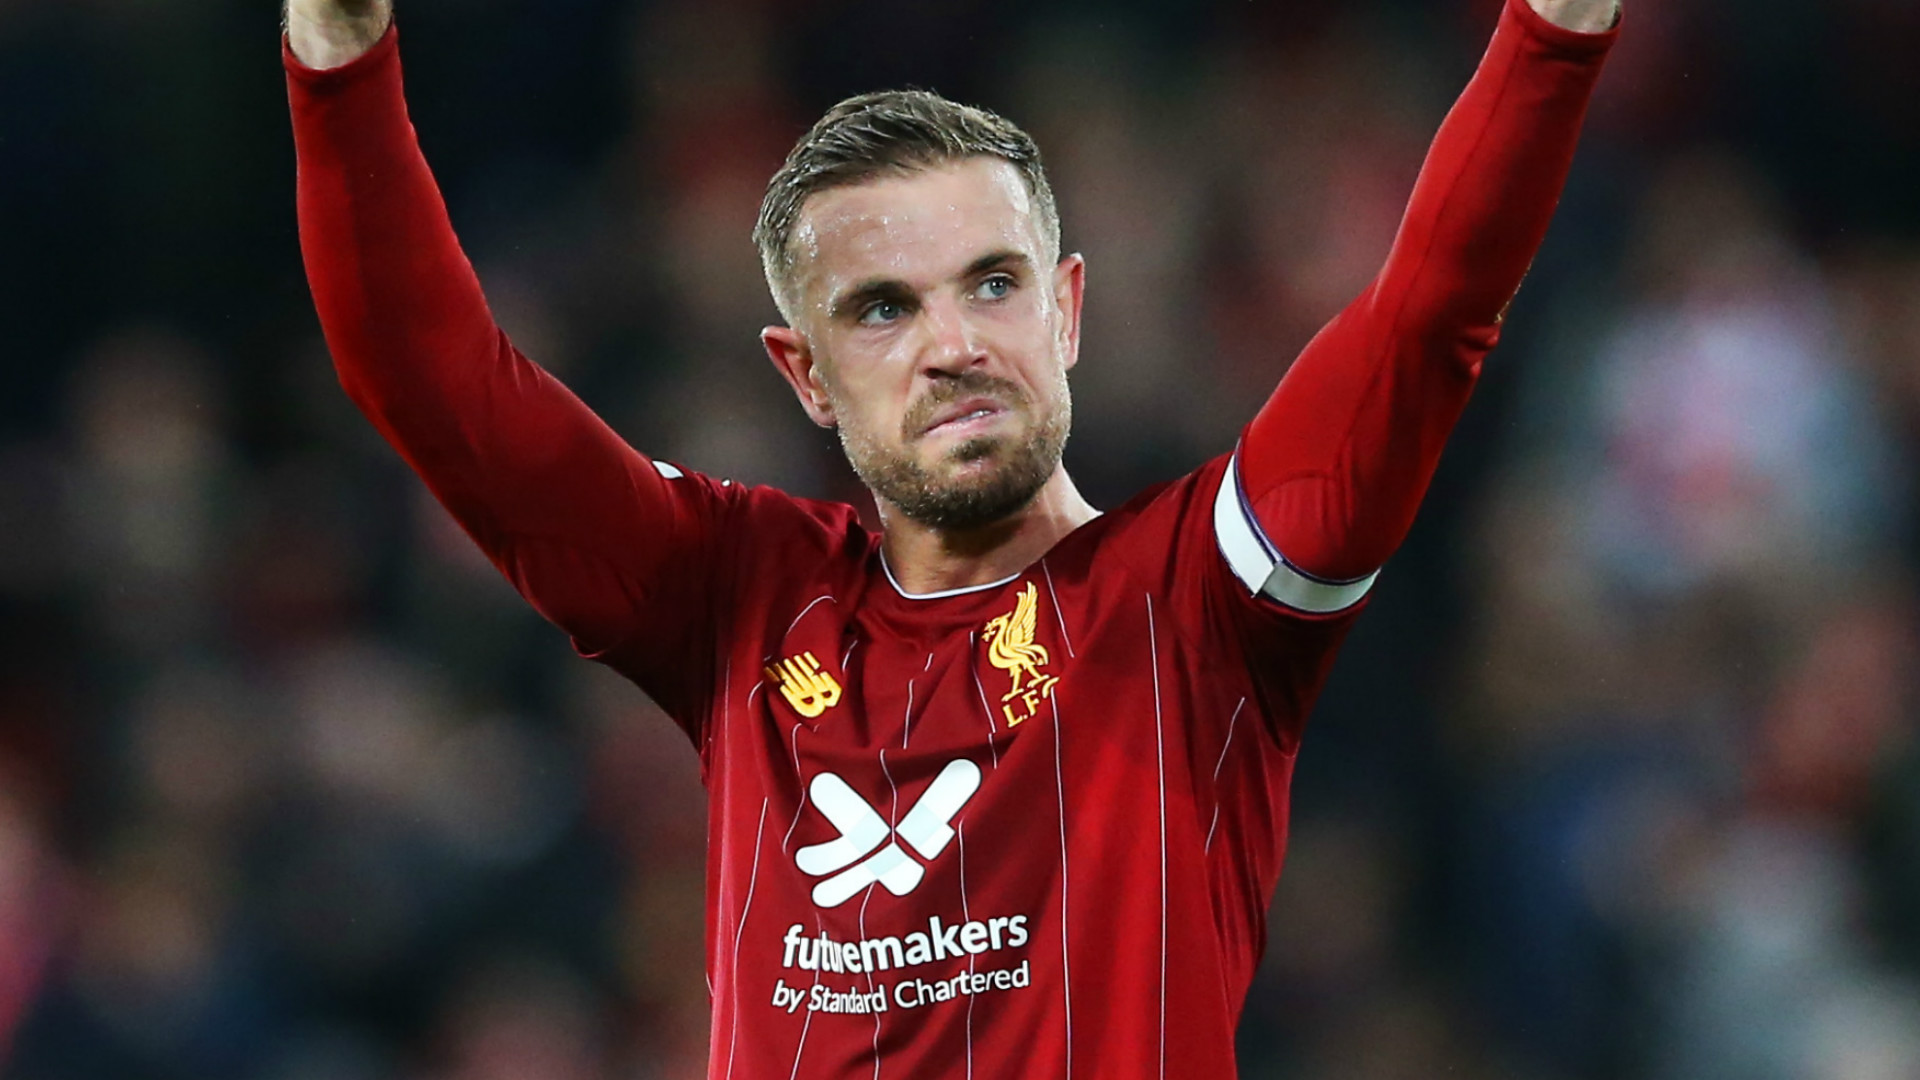 'Liverpool have bought a lot of players, but Henderson still plays' – Carragher hails Reds skipper